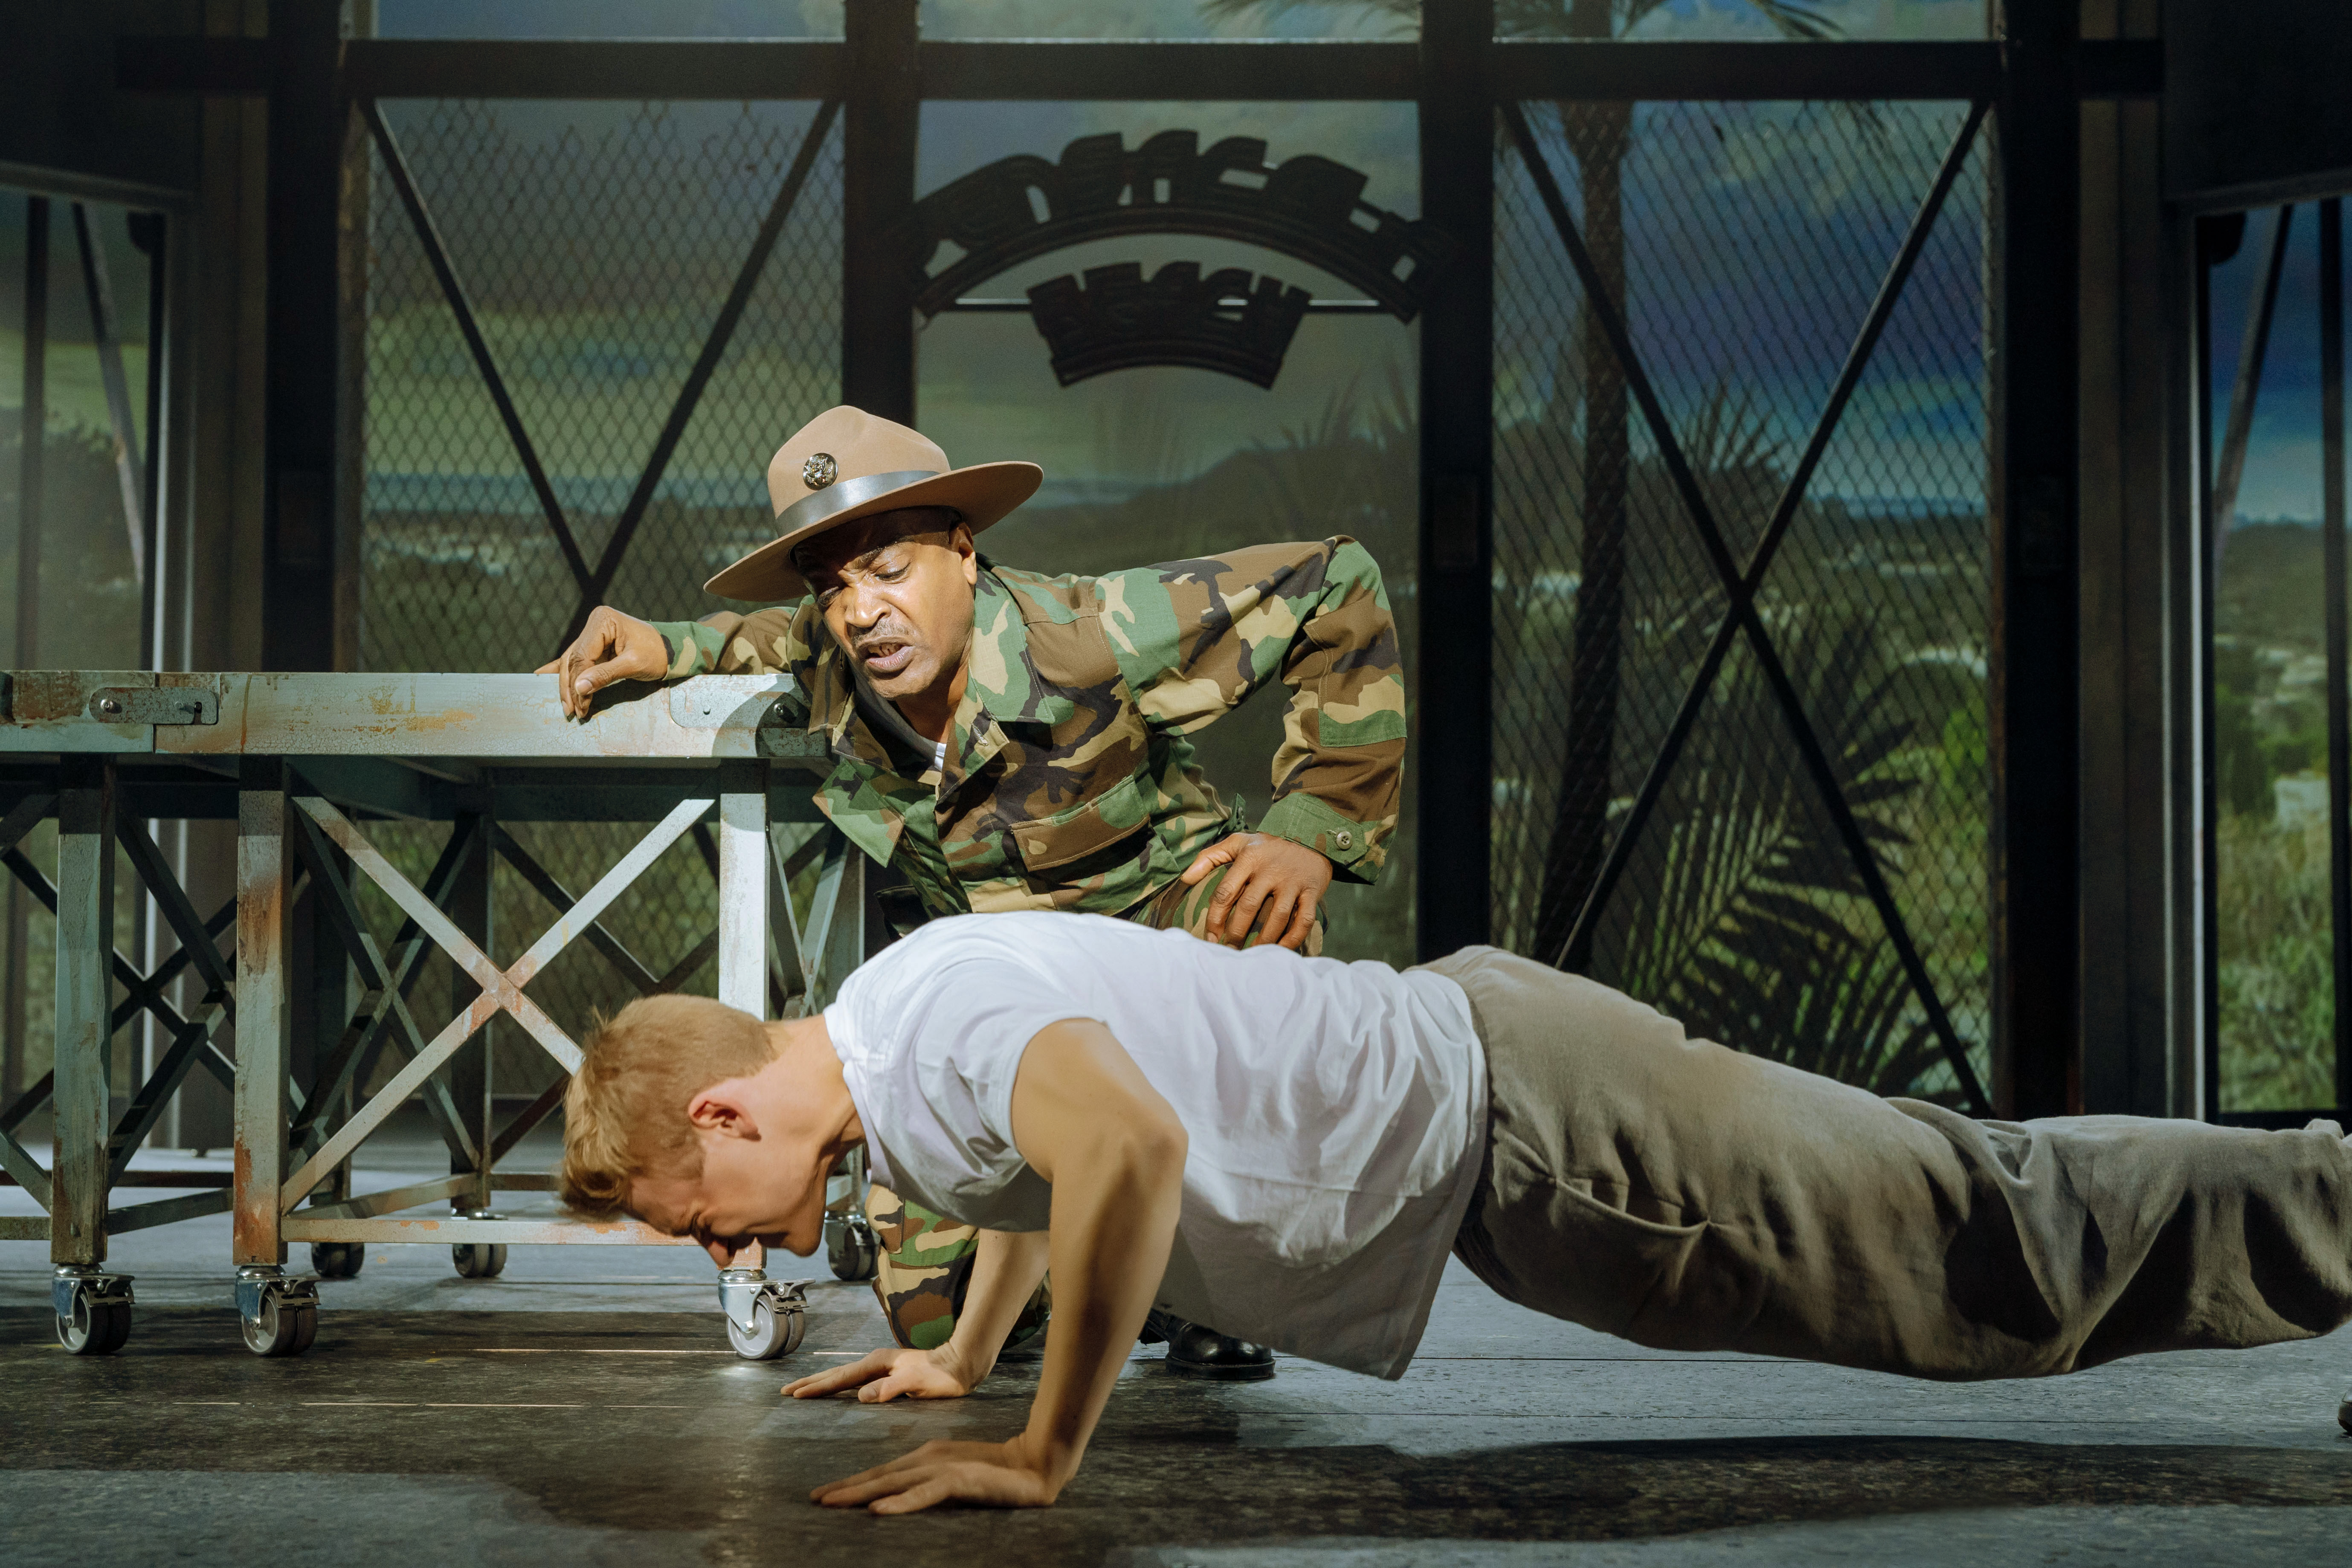 An Officer and a Gentleman. US Navy officer trainee Zack Mayo being put through his paces with press-up drills.